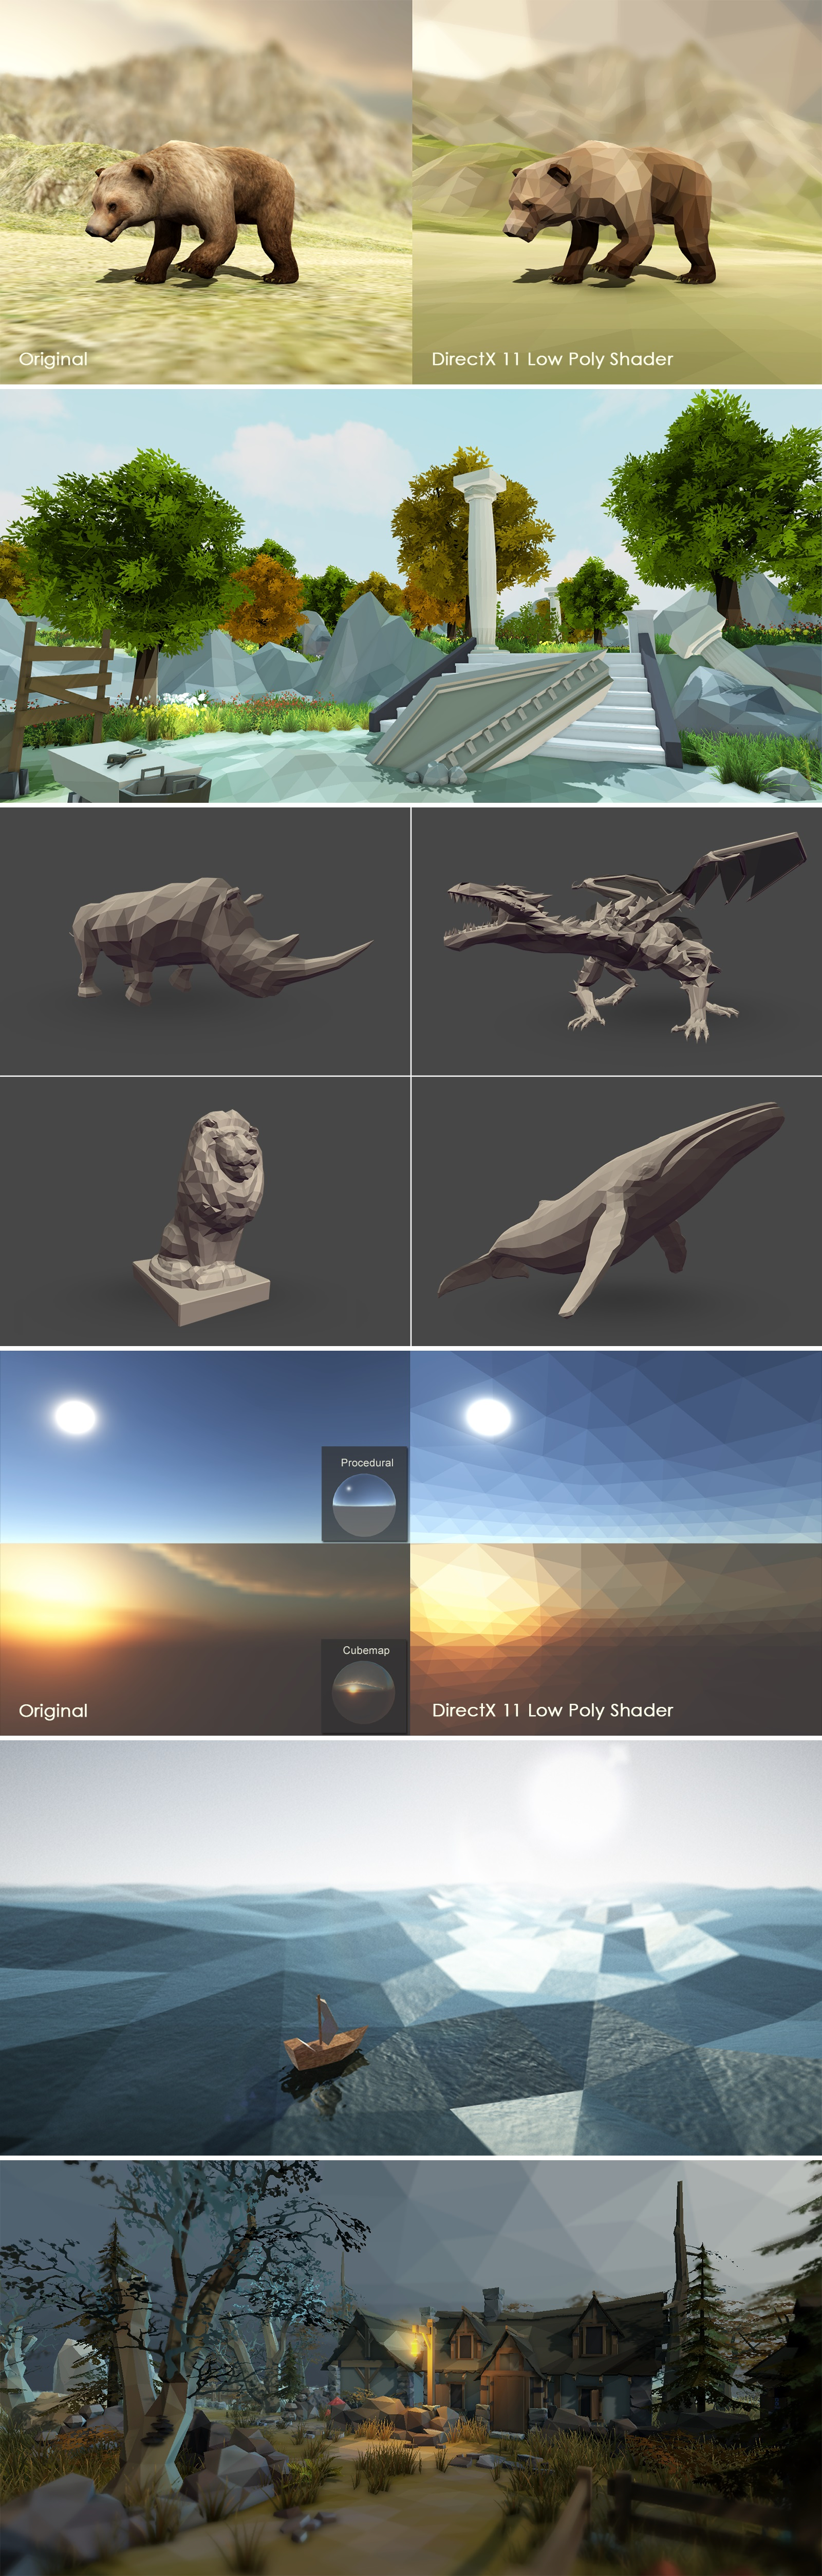 directx11-low-poly-shader.jpg